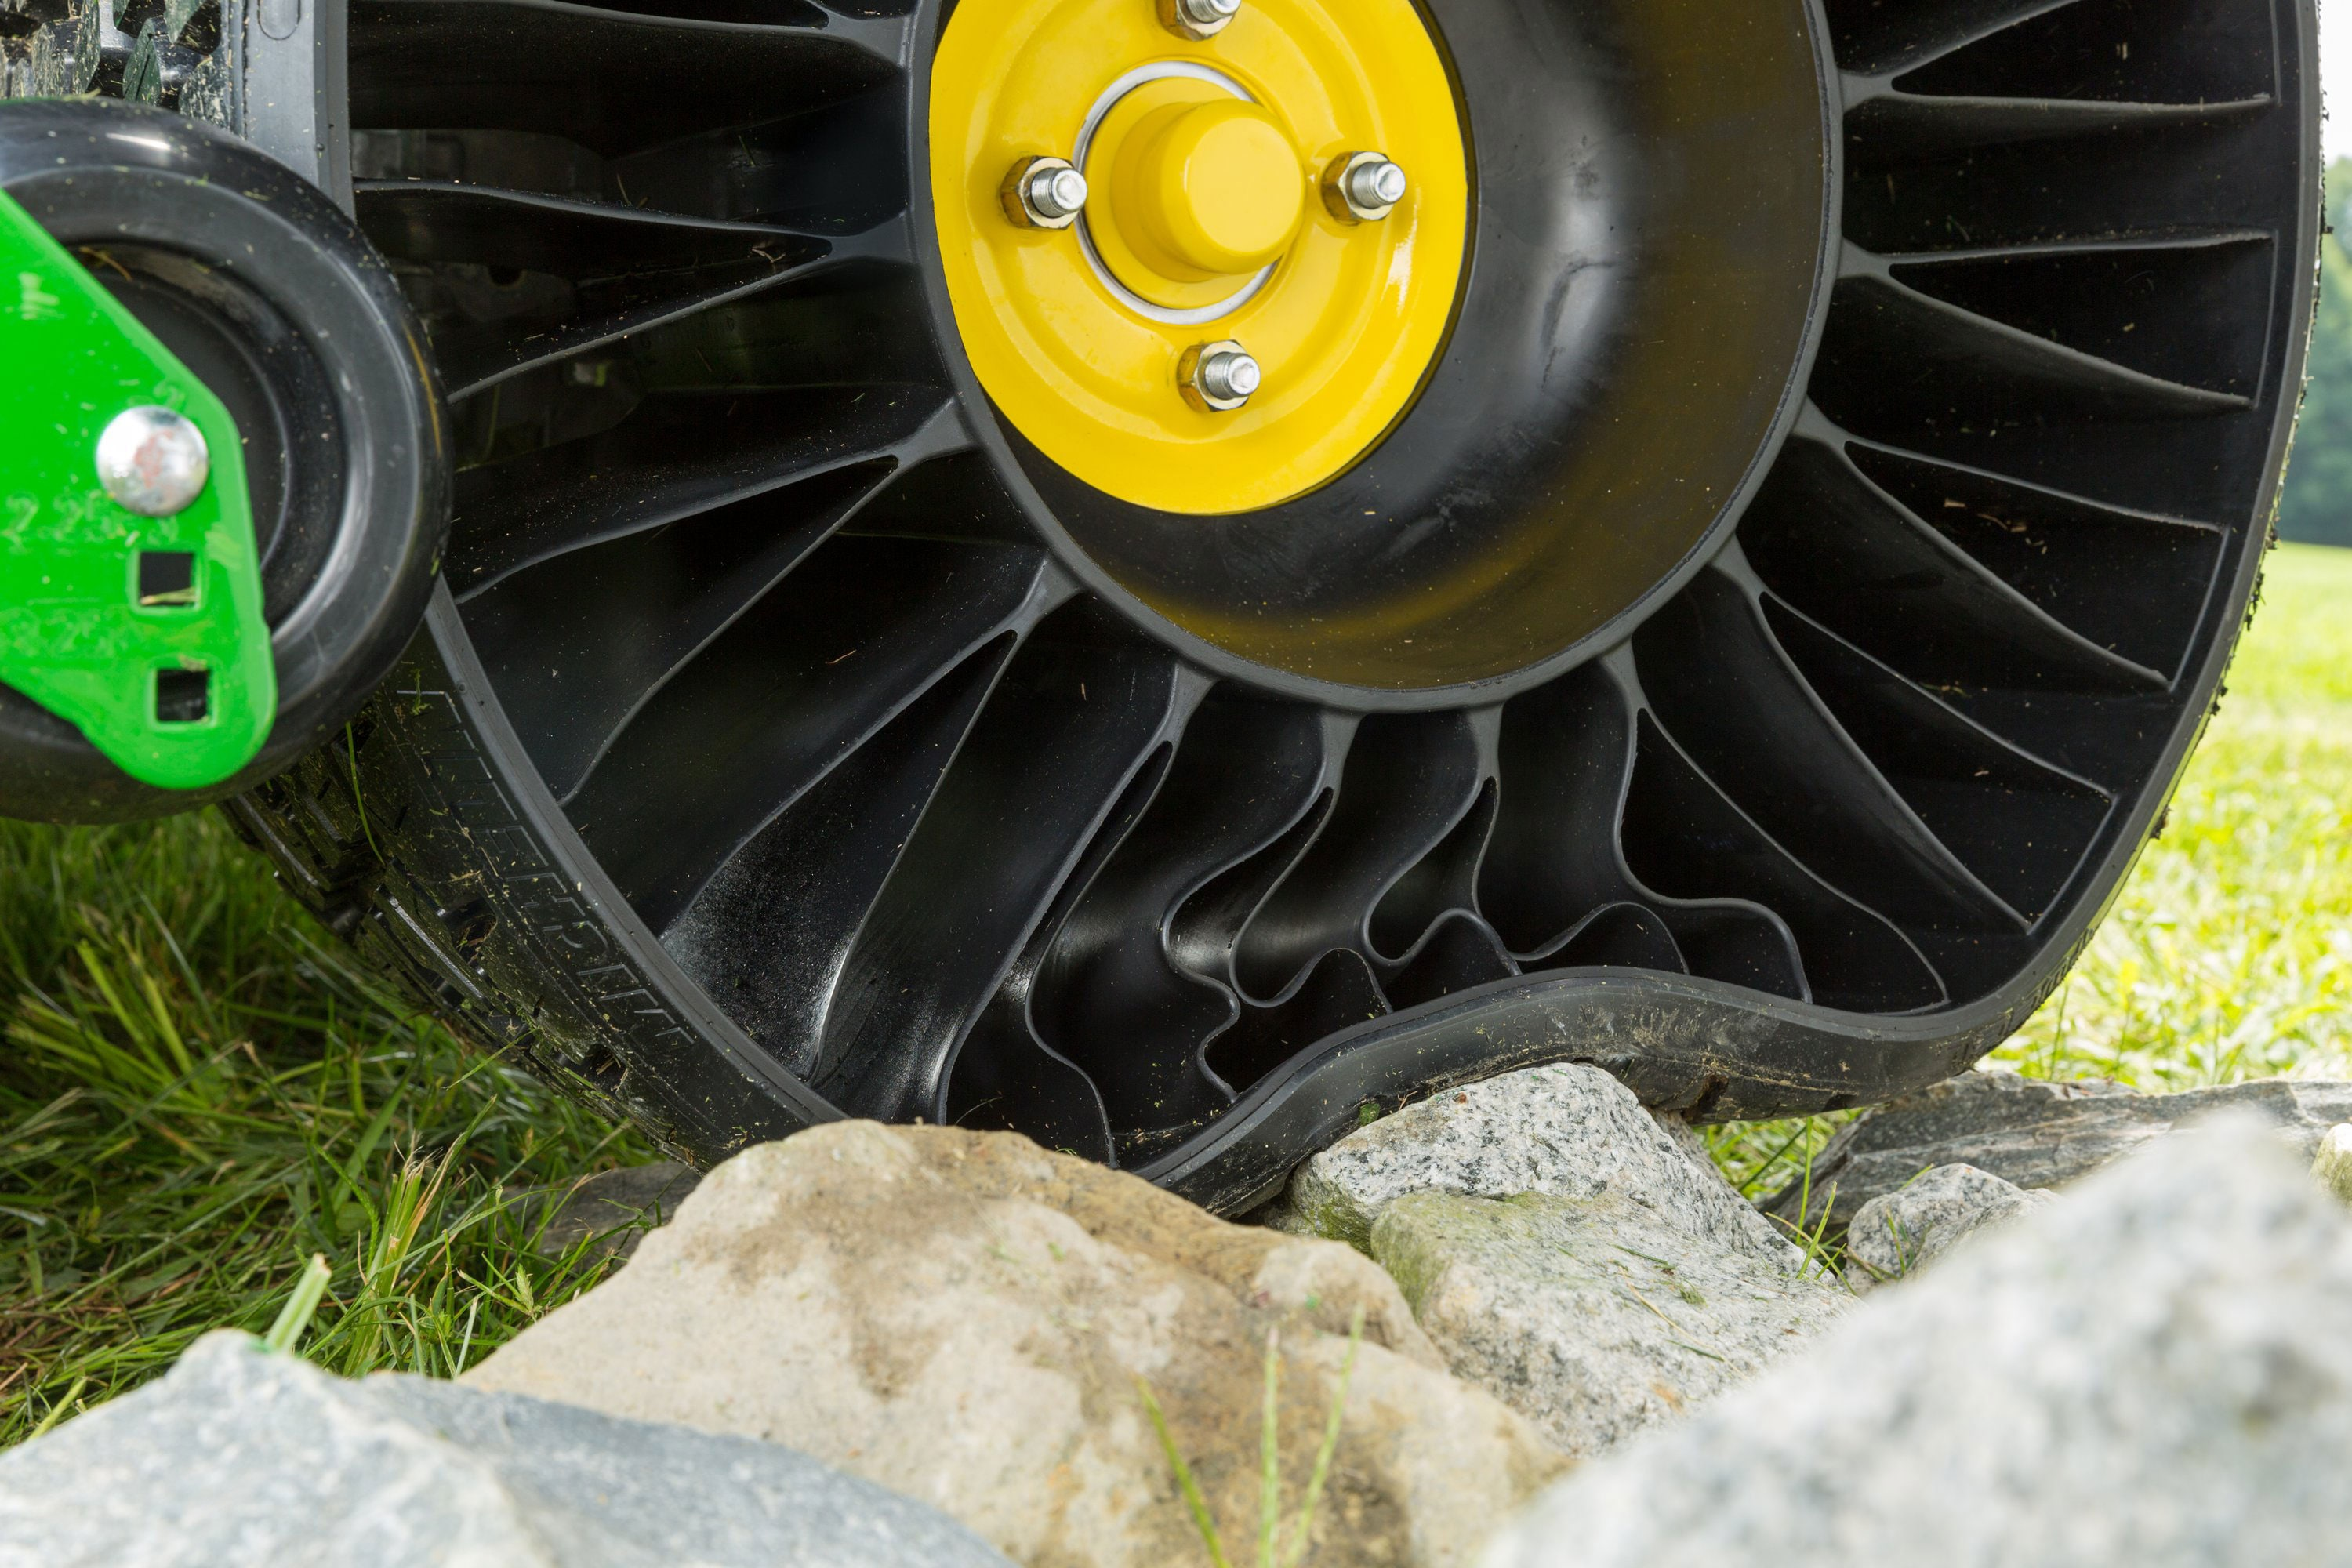 X TWEEL Turf flexes over rocks to make for a more comfortable ride